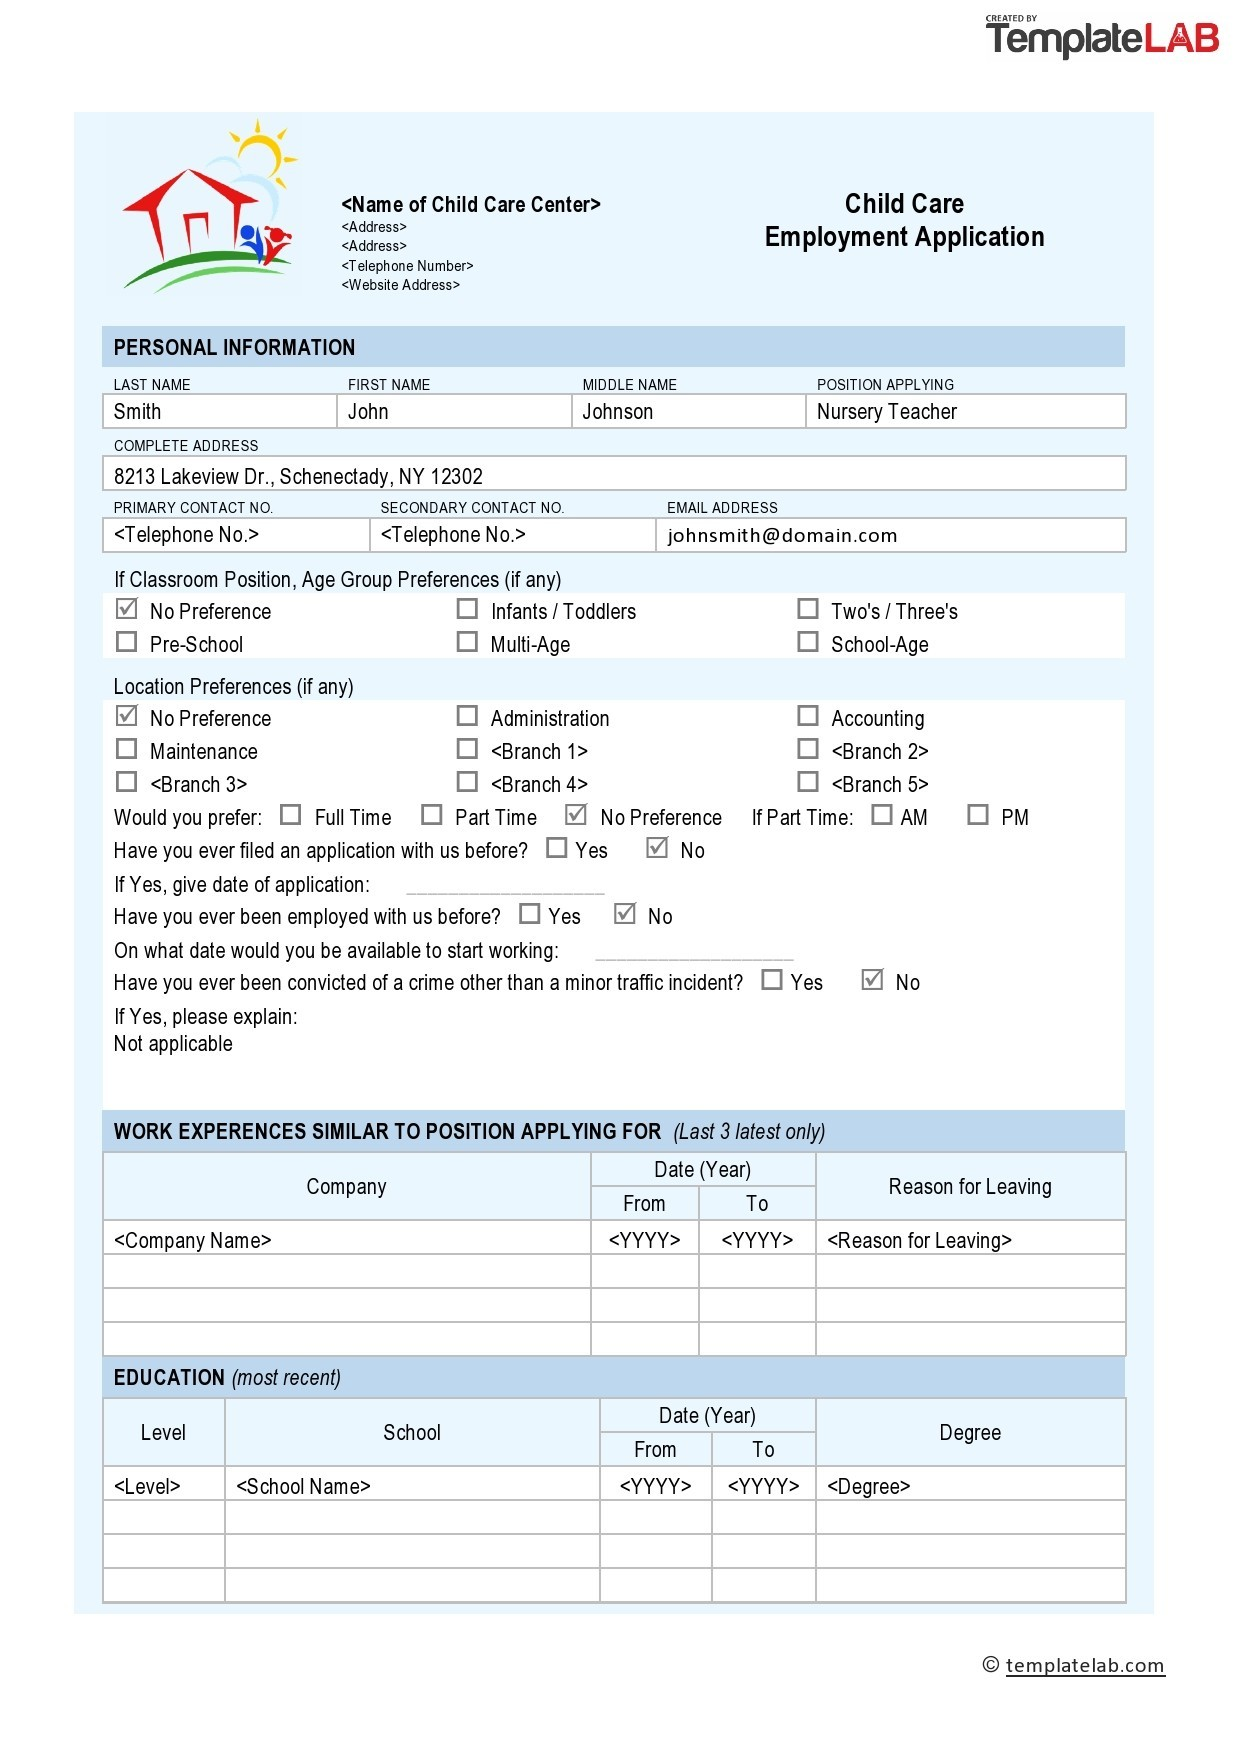 Free Child Care Employment Application Template - TemplateLab